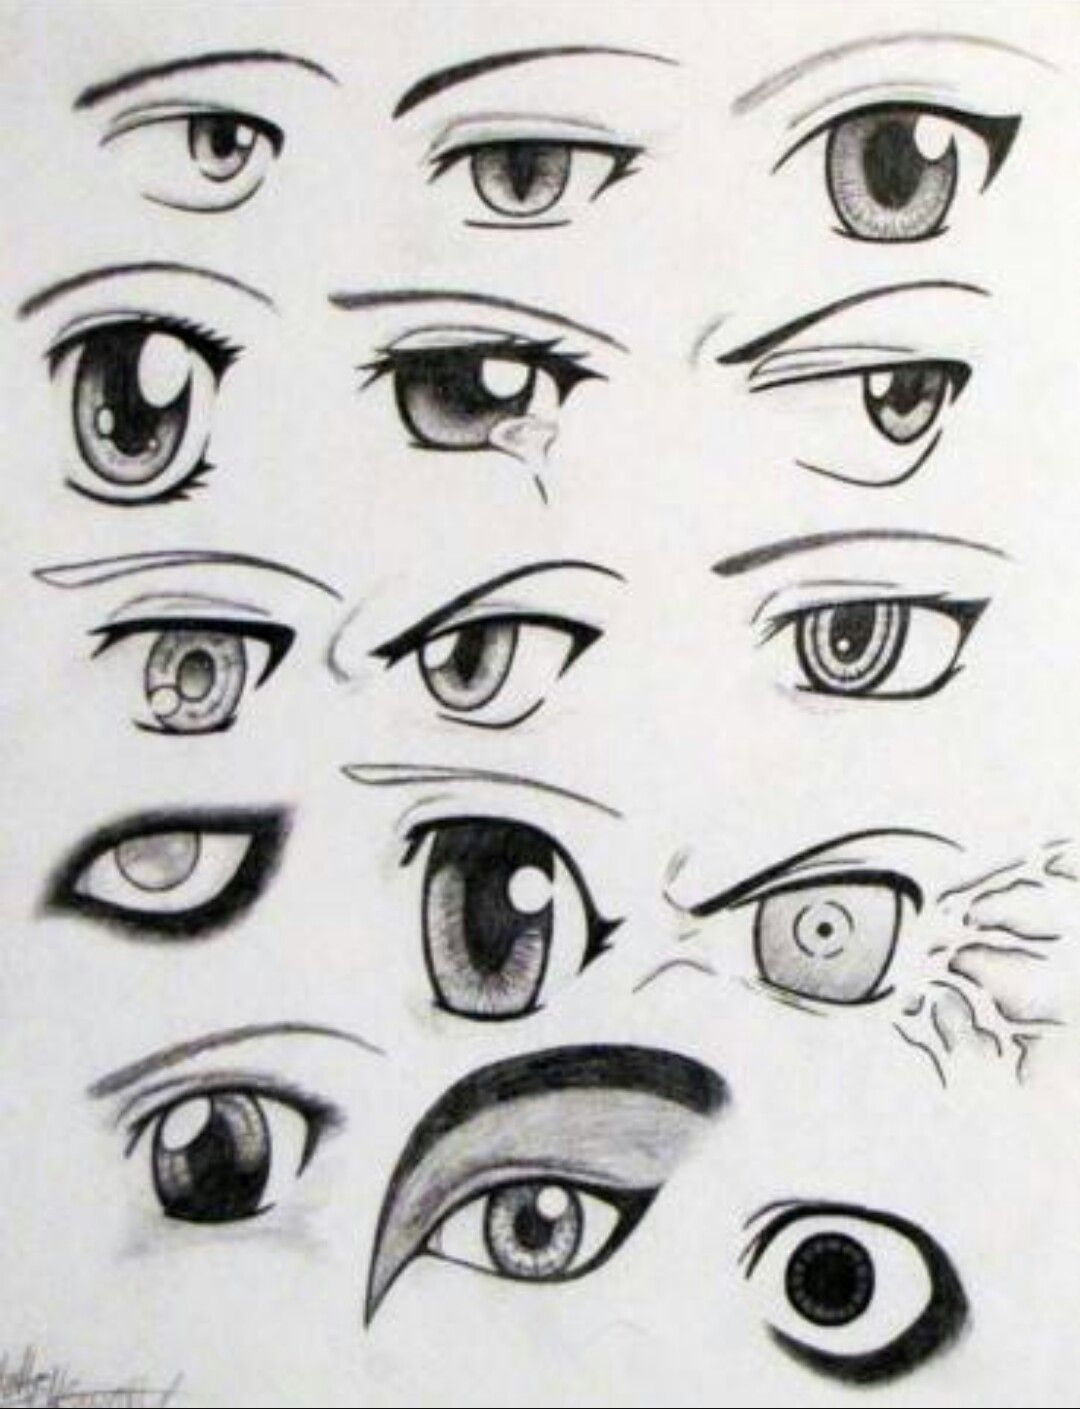 Different Eyes Anime Manga Eyes Emotions Art Blackandwhite